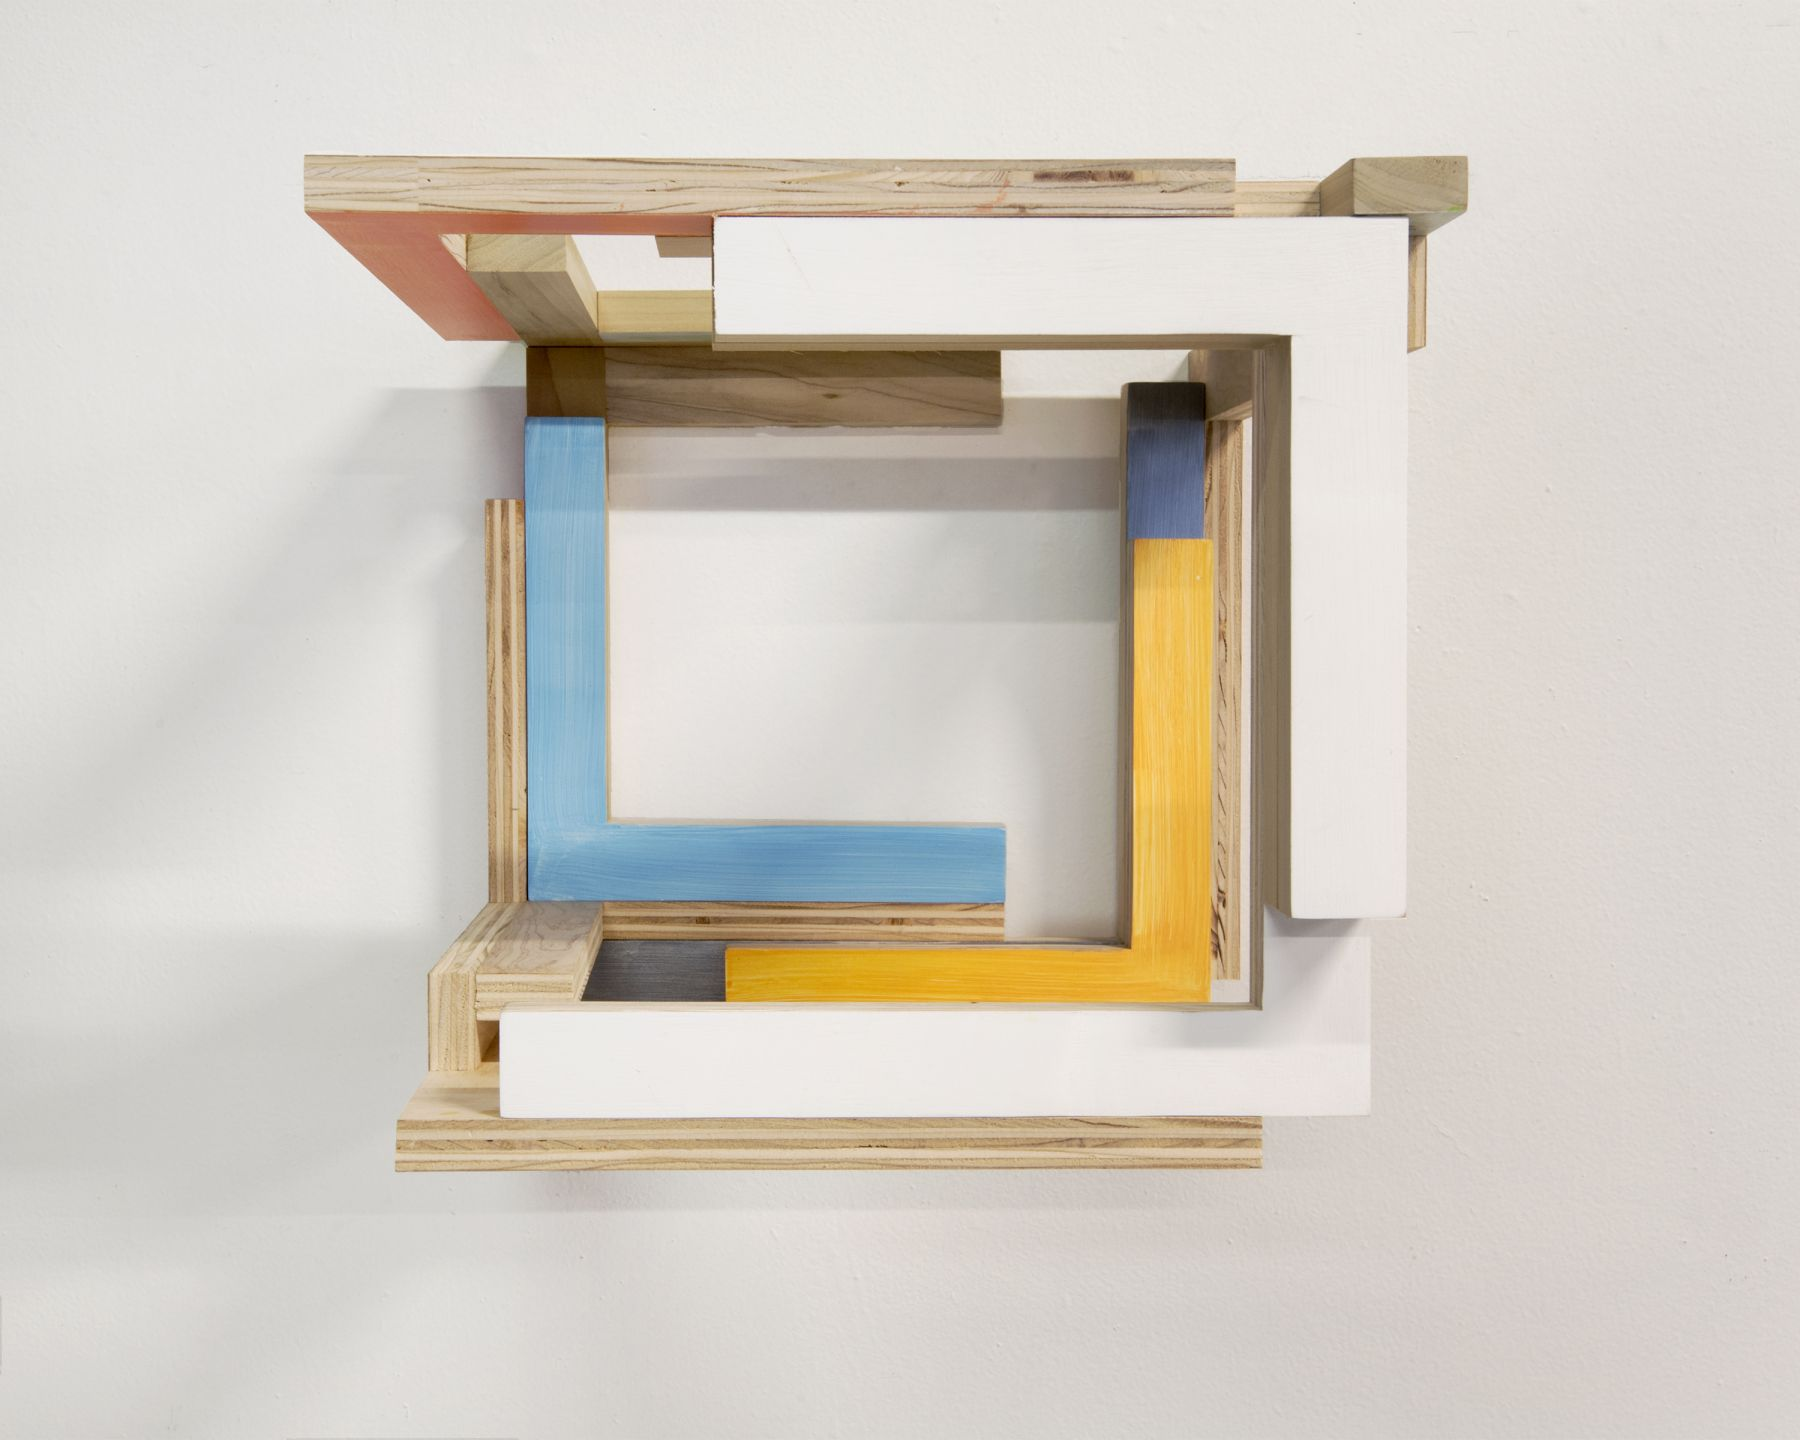 "James Woodfill, ""Training Model: Wall Model #4"", birch plywood, poplar, maple with acrylic and gesso, wall mounted, 15"" x 15"" x 15"", 2019, an open wooden wall sculpture, open on the left with natural, white, orange, sky and sea blue and orange"